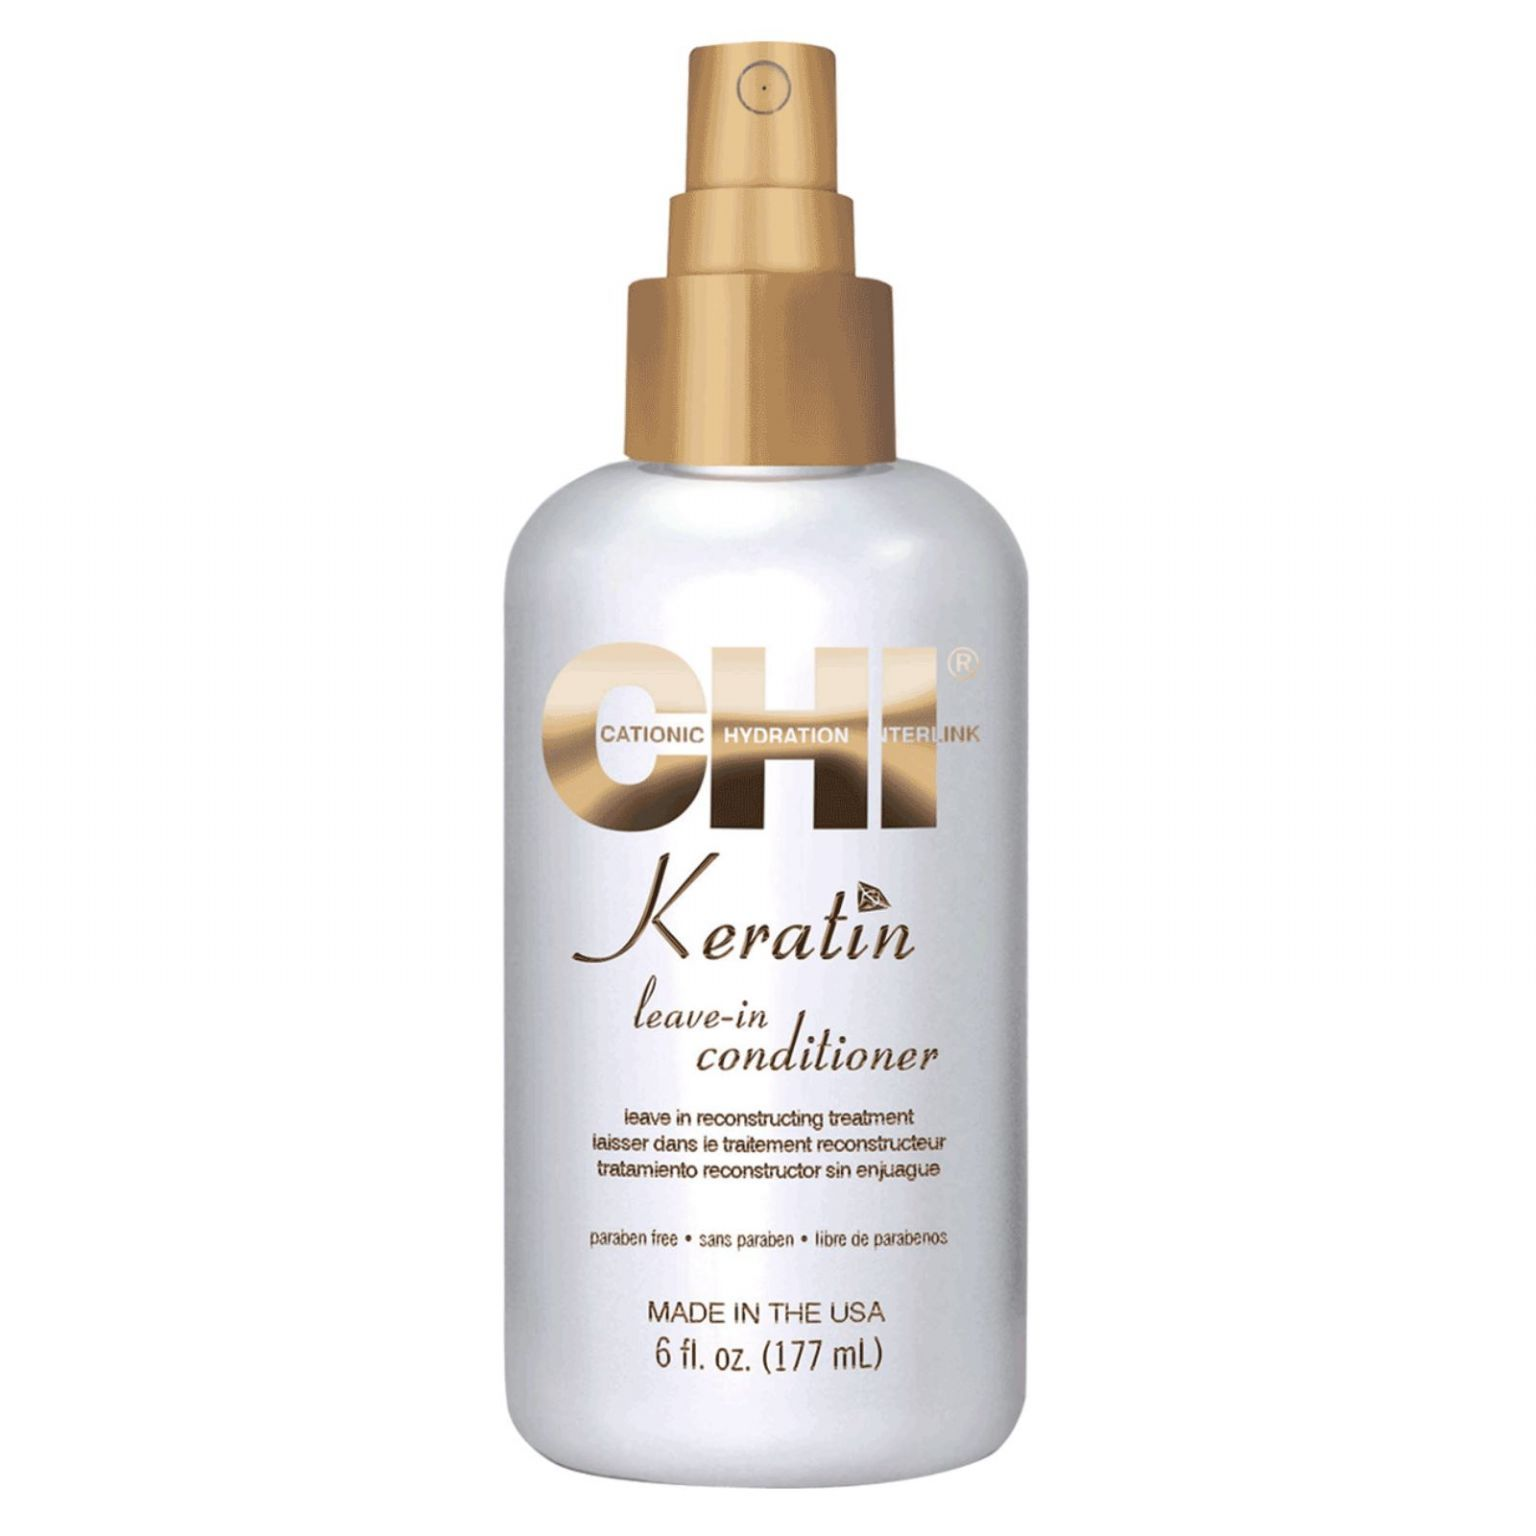 Keratin Leave-In Conditioner Reconstructing Treatment